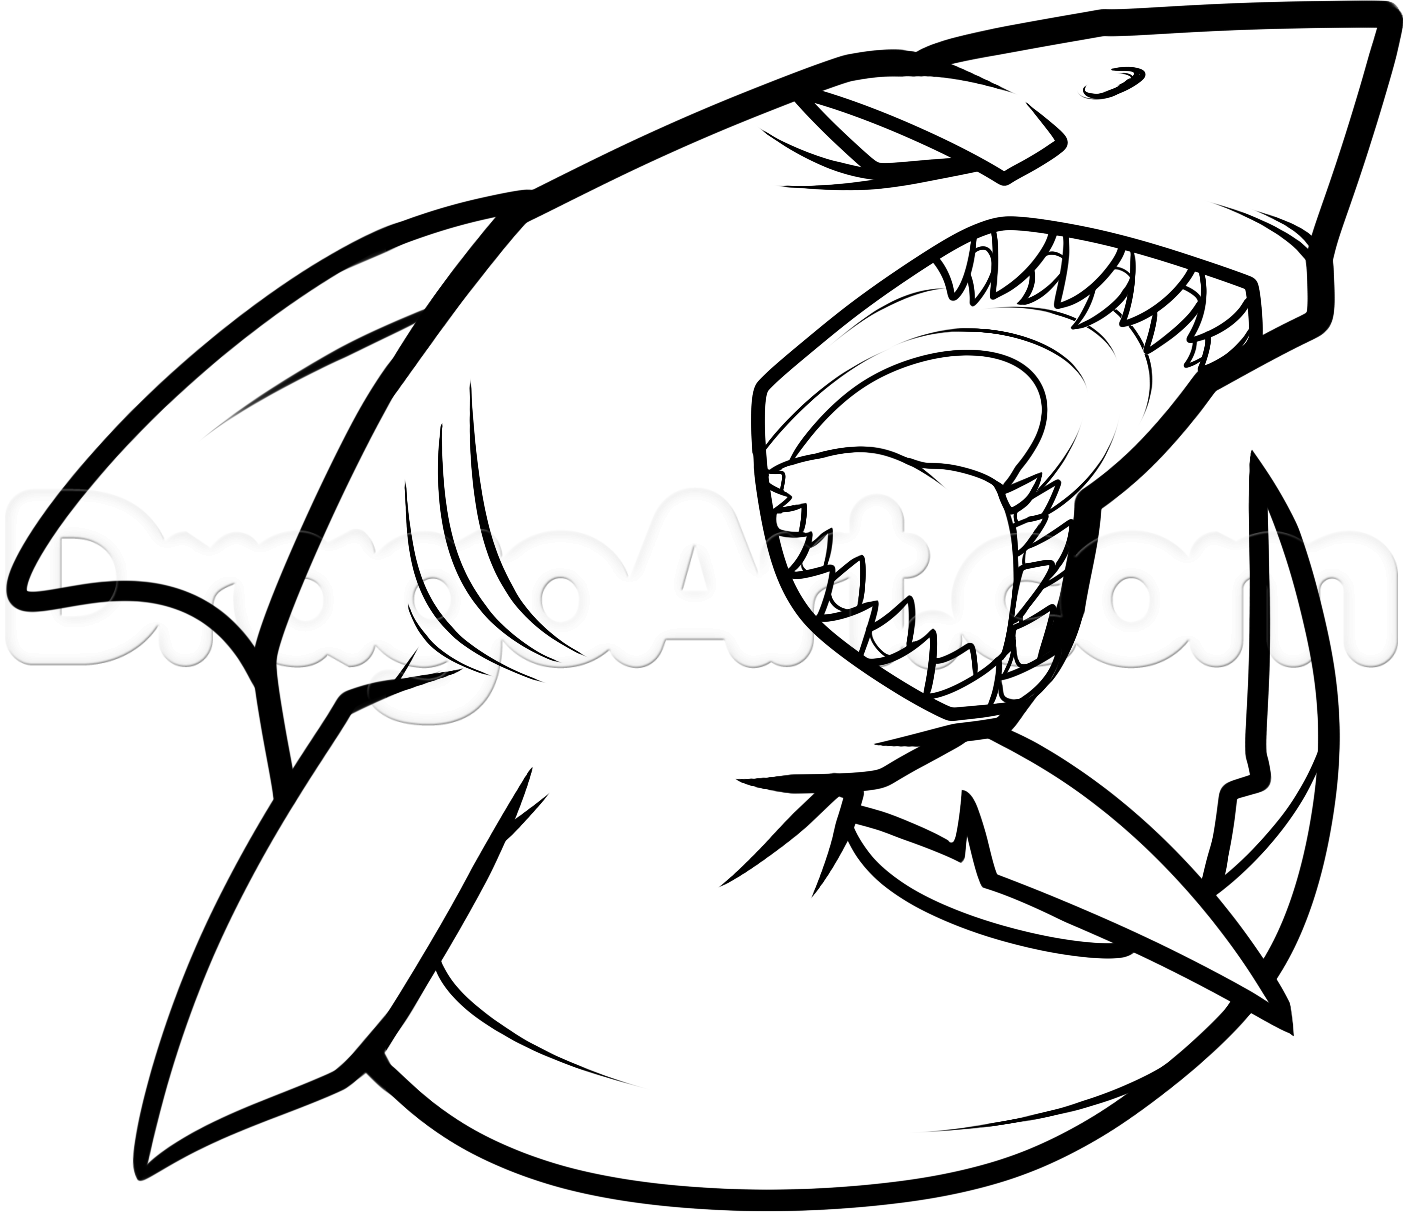 how to draw a cool shark step 7 | Crafty things | Pinterest | Shark, Crafty and Tutorials